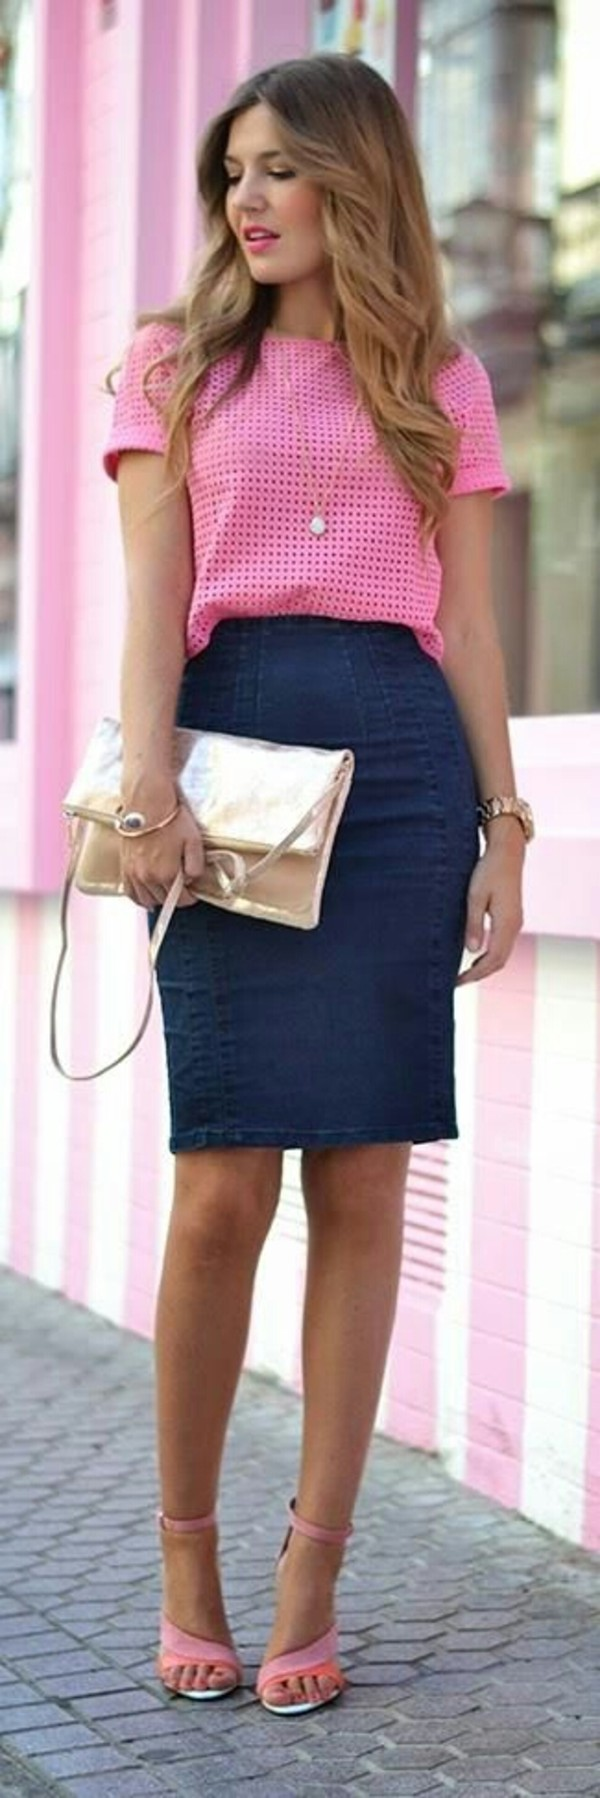 skirt denim pencil skirt blouse shoes office outfits blue skirt top pink top checkered bag gold bag sandals pink sandal